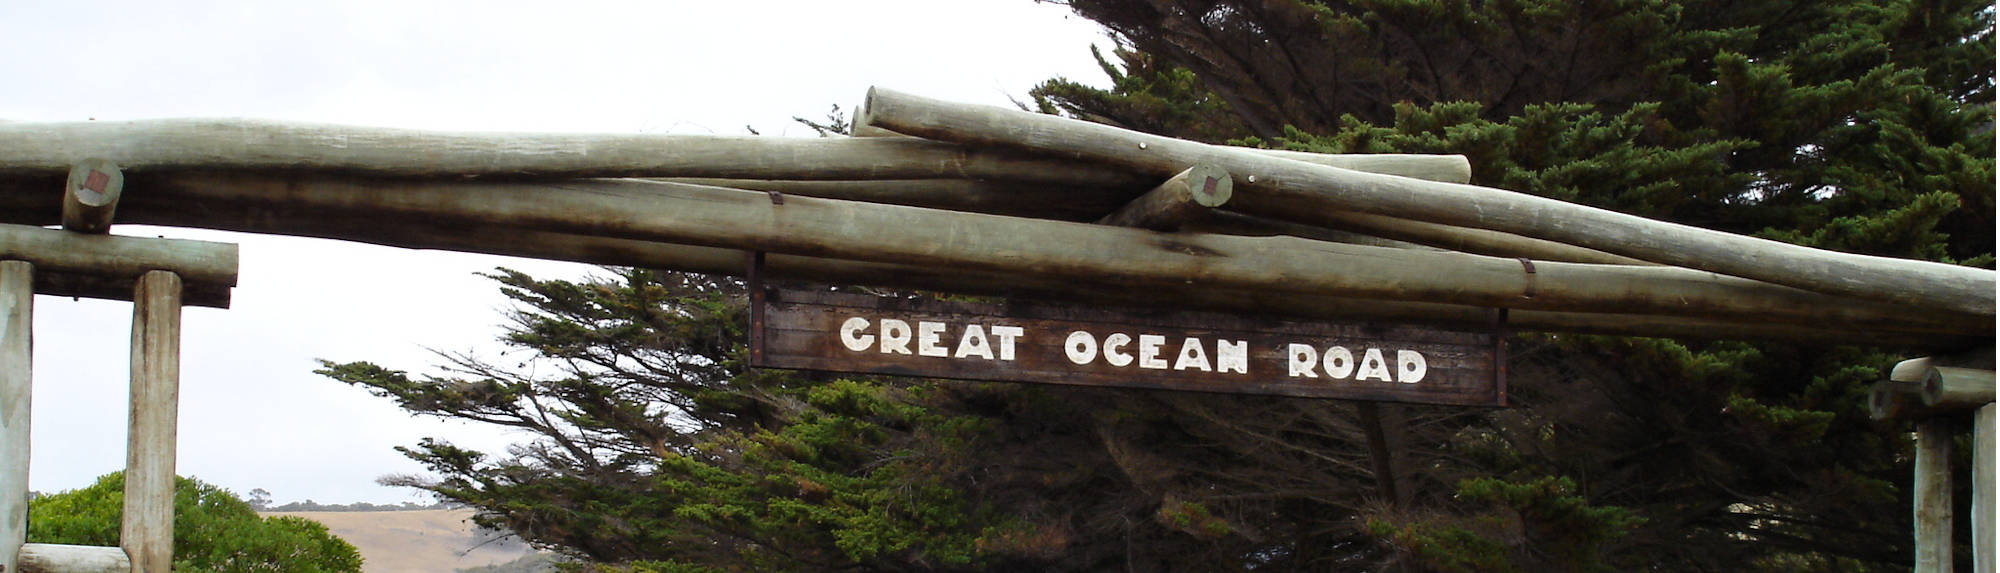 Where does the Great Ocean Road Start and End?